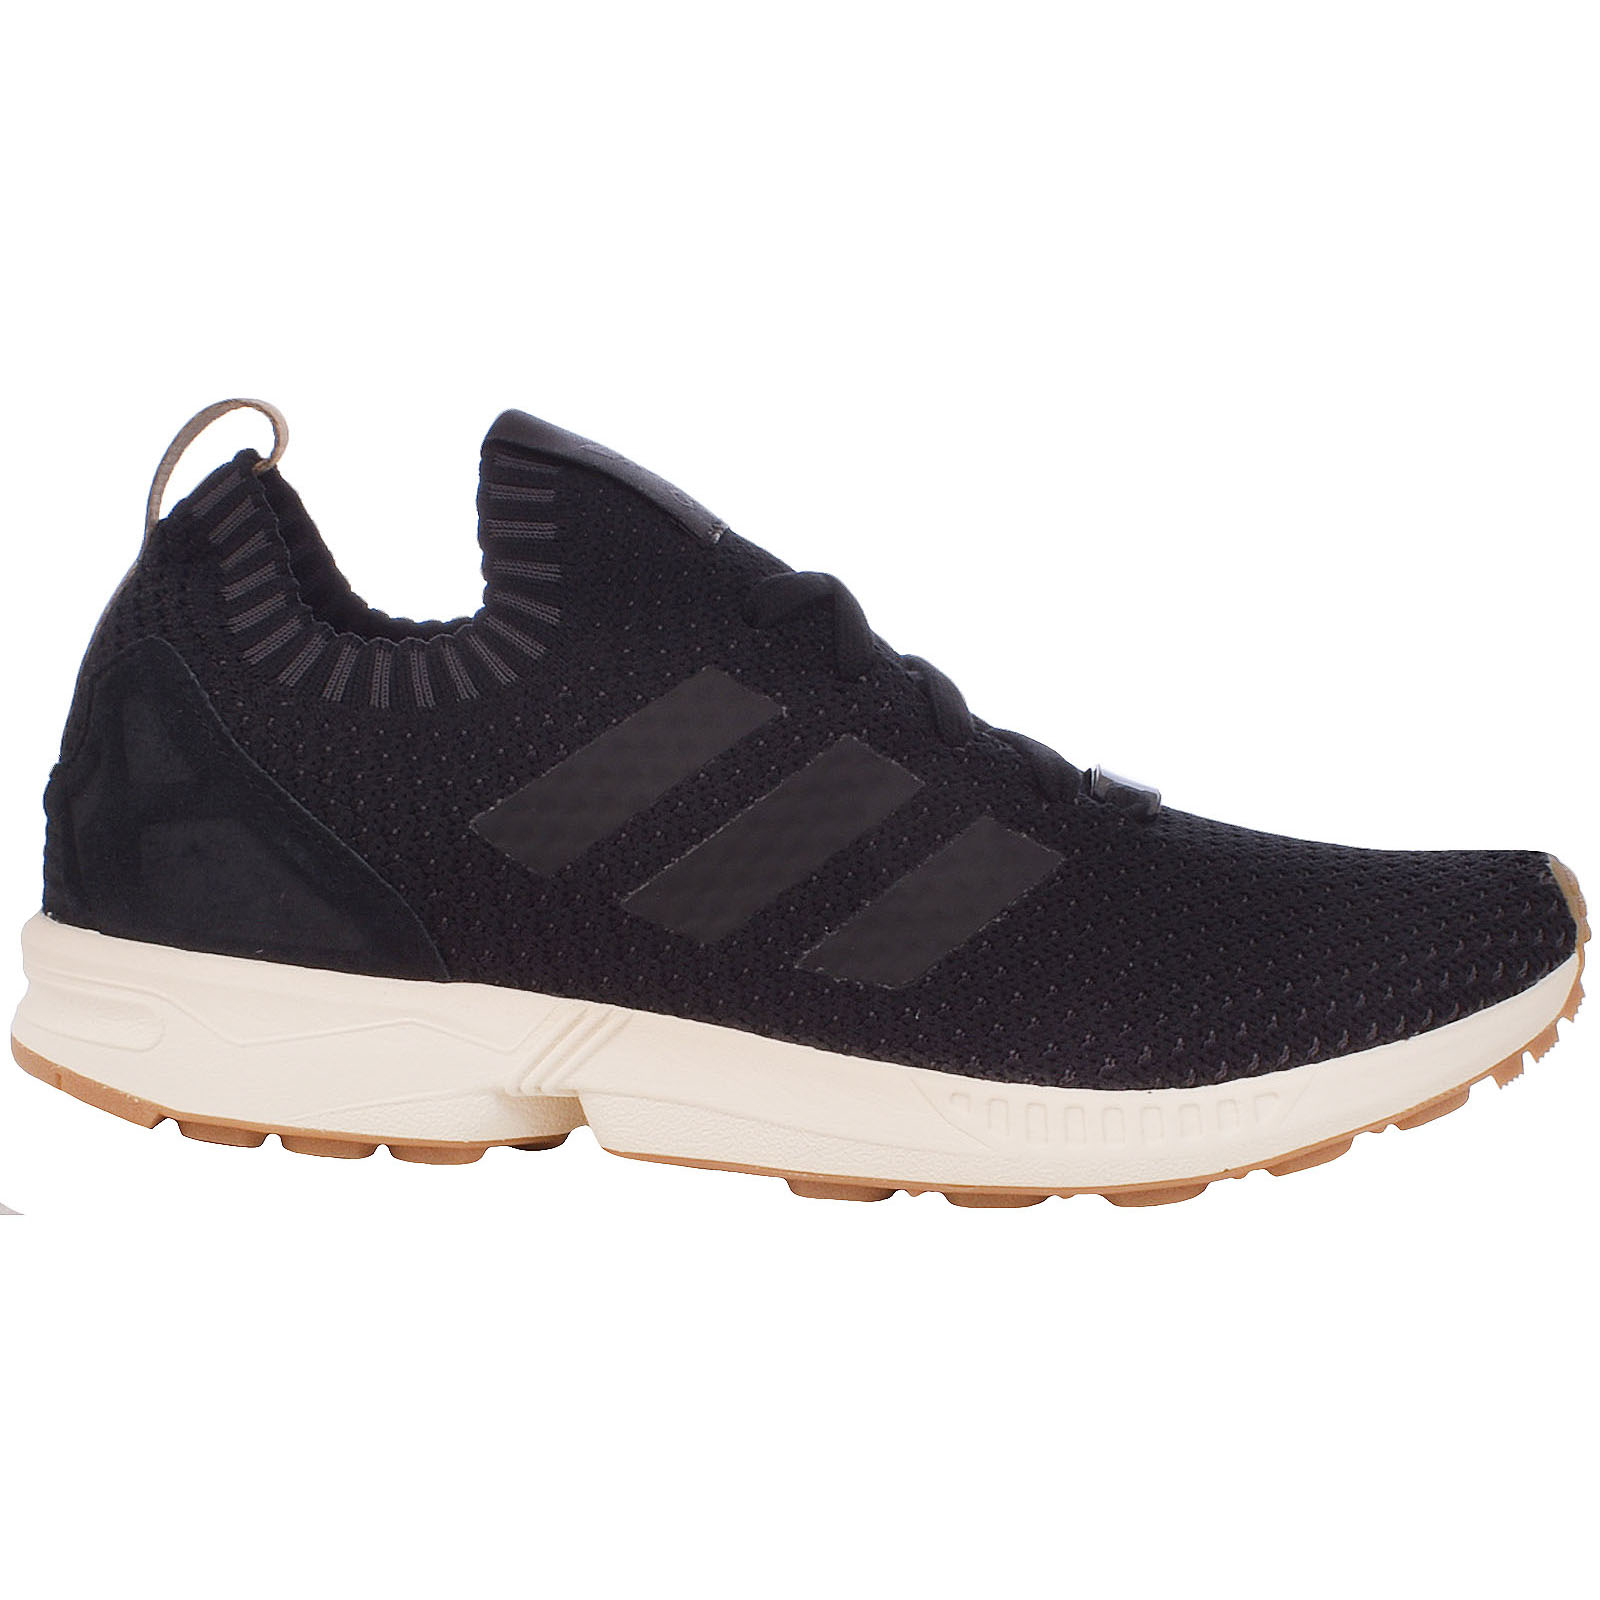 da855c458000d adidas Originals ZX Flux PK Shoes Trainers Black Ba7371 Sports 10. About  this product. Picture 1 of 5  Picture 2 of 5 ...